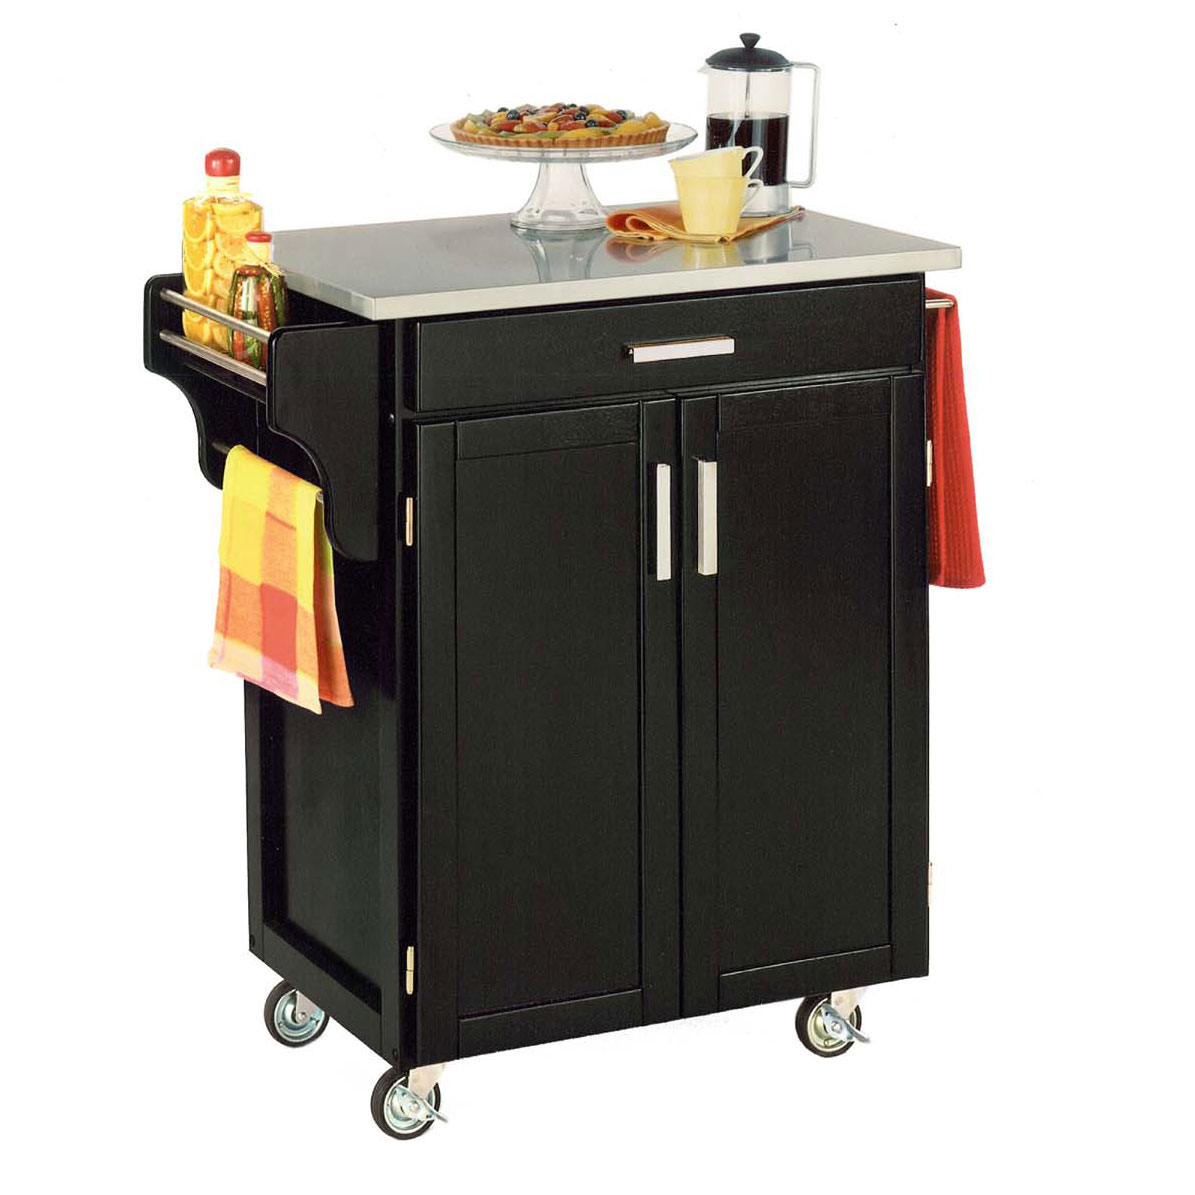 Black Finish Create a Cart with Stainless Steel Top, BLACK STAINLESS STEEL